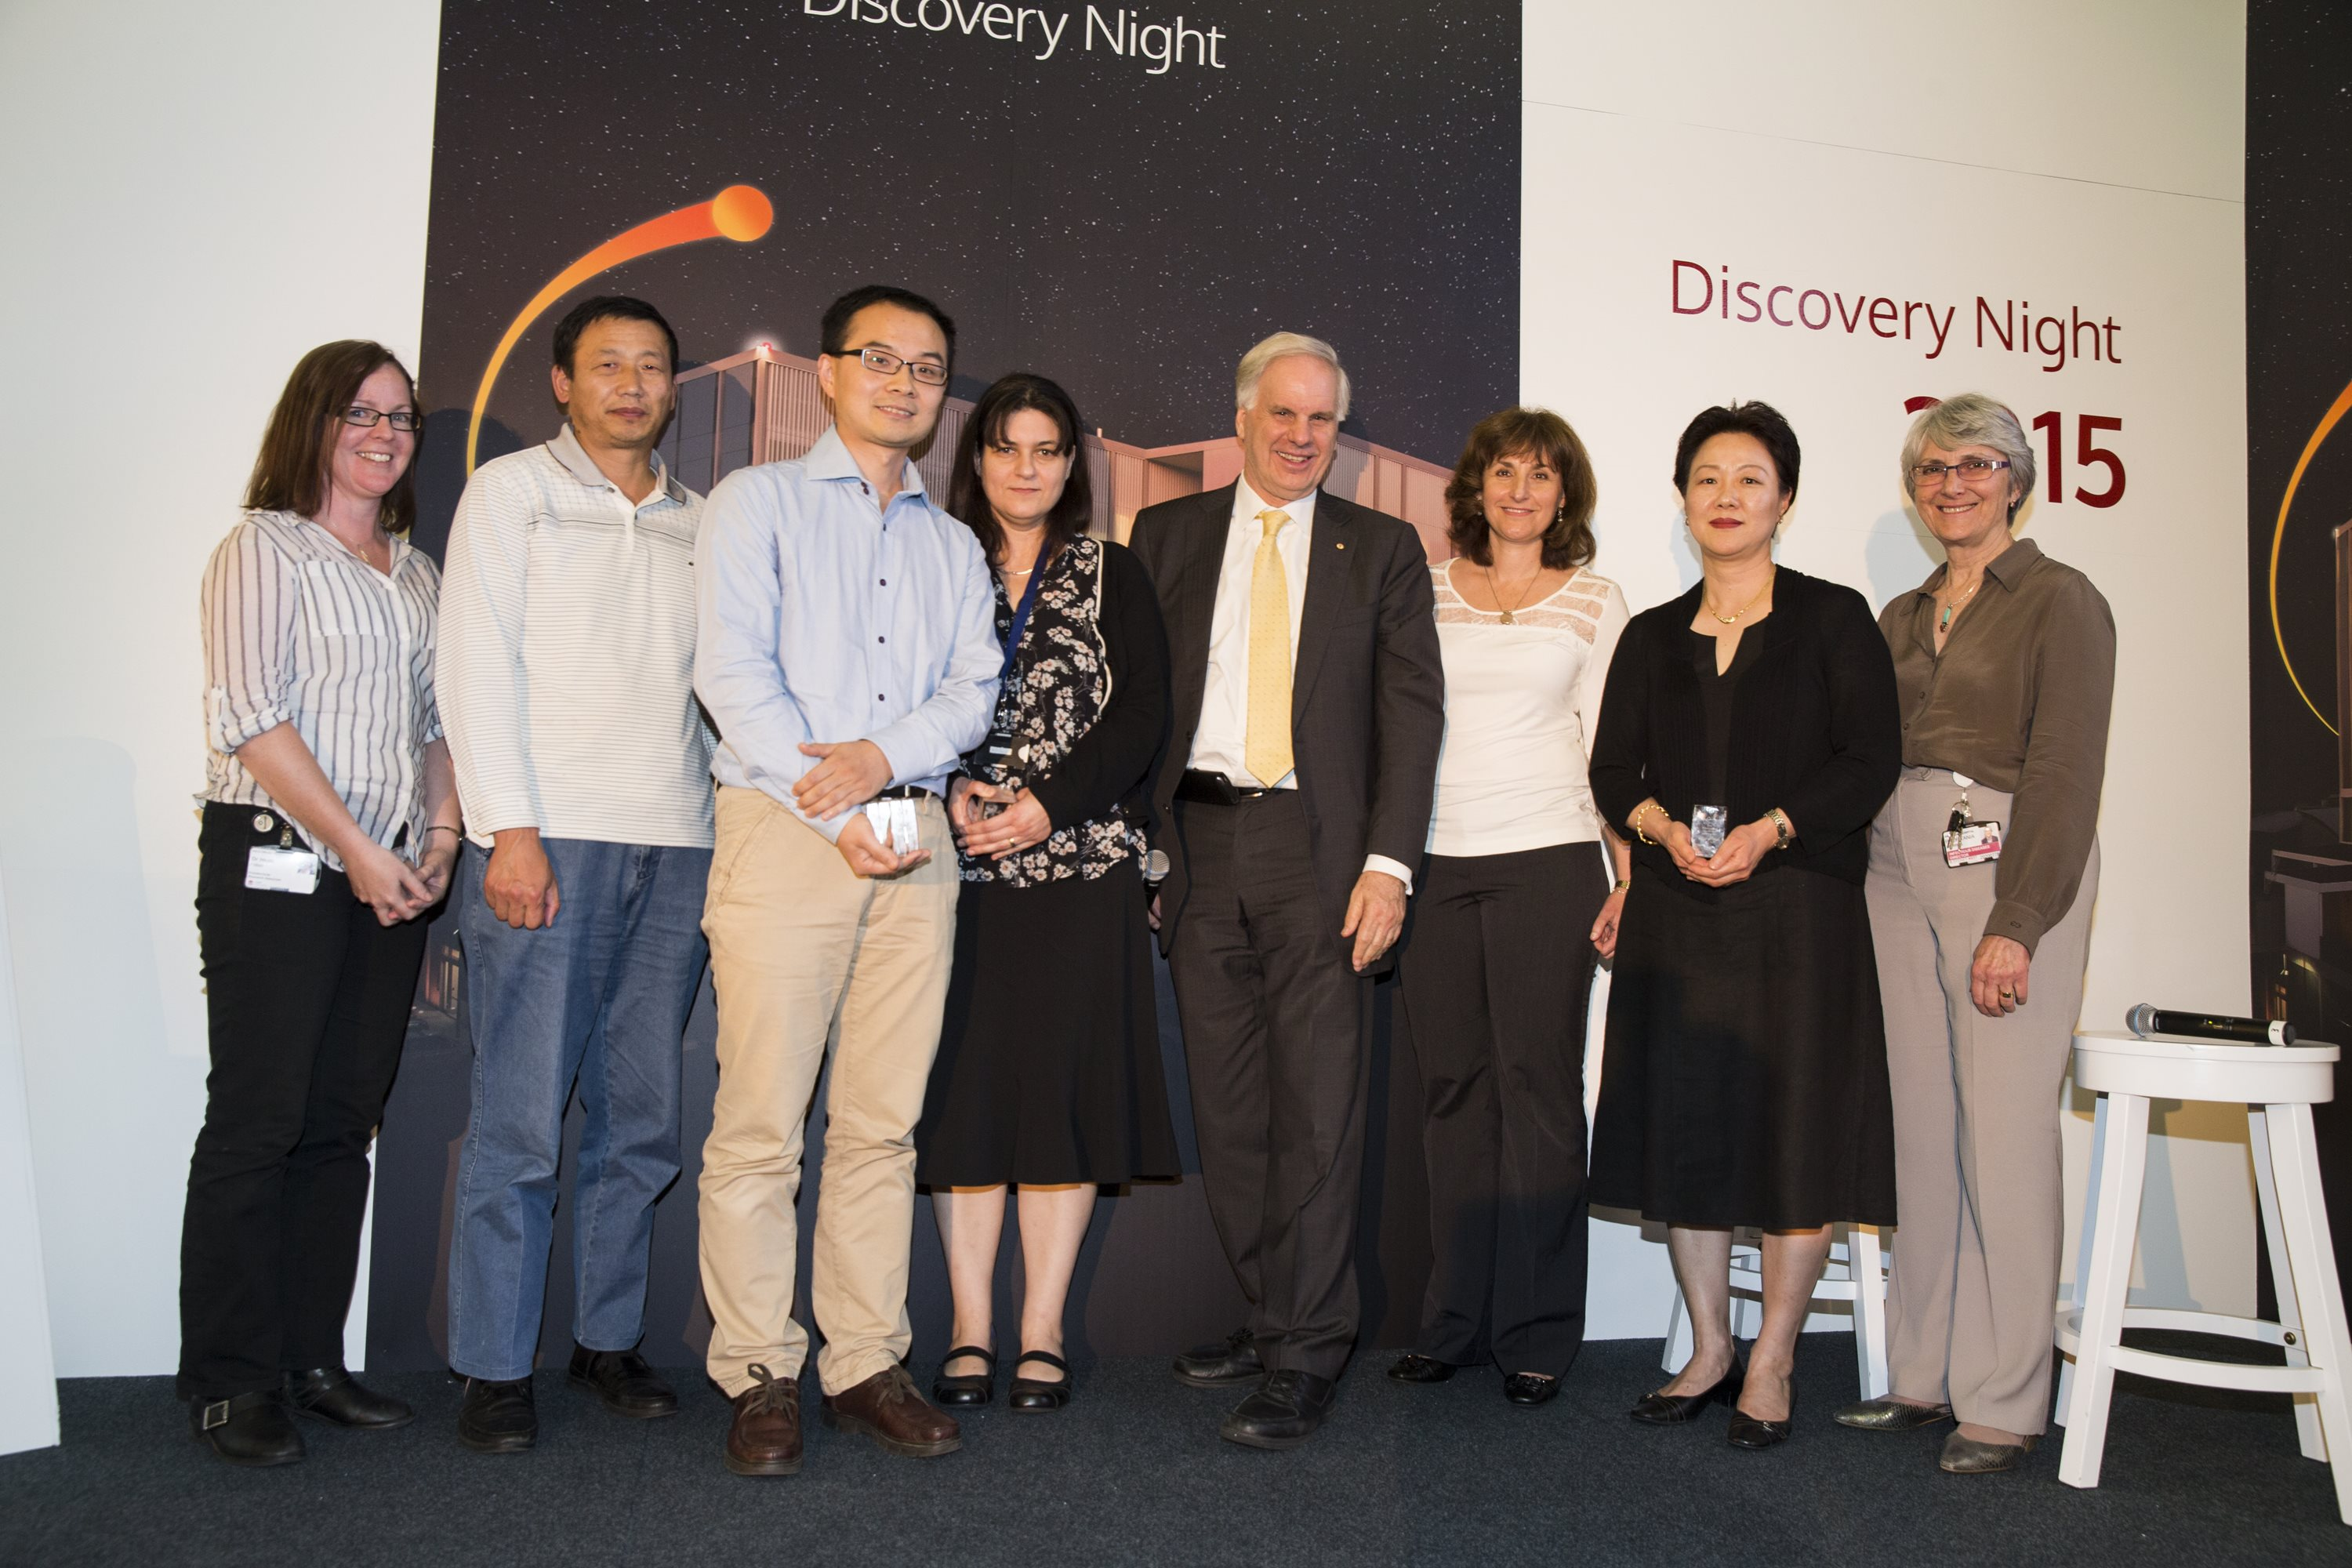 Institute ED Professor Tony Cunningham (Centre) with Science Prize winners (from left to right) Dr Heidi Hilton, Dr Yiping Wang, Dr Qi Cao, Dr Sophie Lev, Associate Professor Julianne Djordjevic, Dr Min Kim, and Professor Tania Sorrell (accepting for Professor Wieland Meyer)